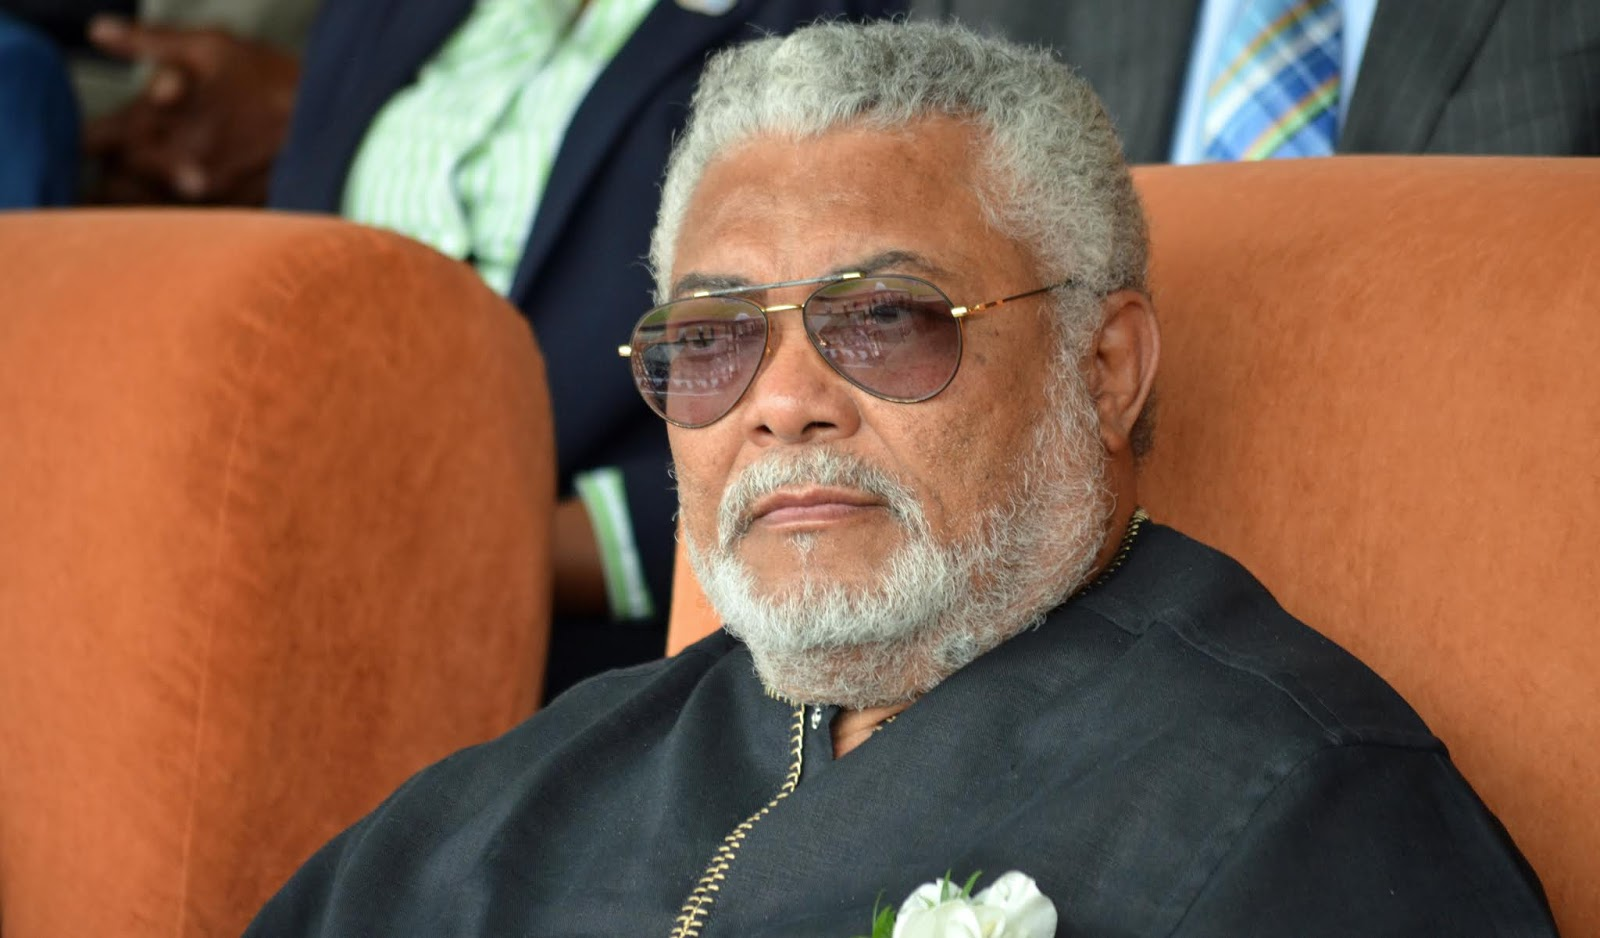 John Jerry Rawlings Condemns Paul Biya, Macron Over Cameroon's Conflict